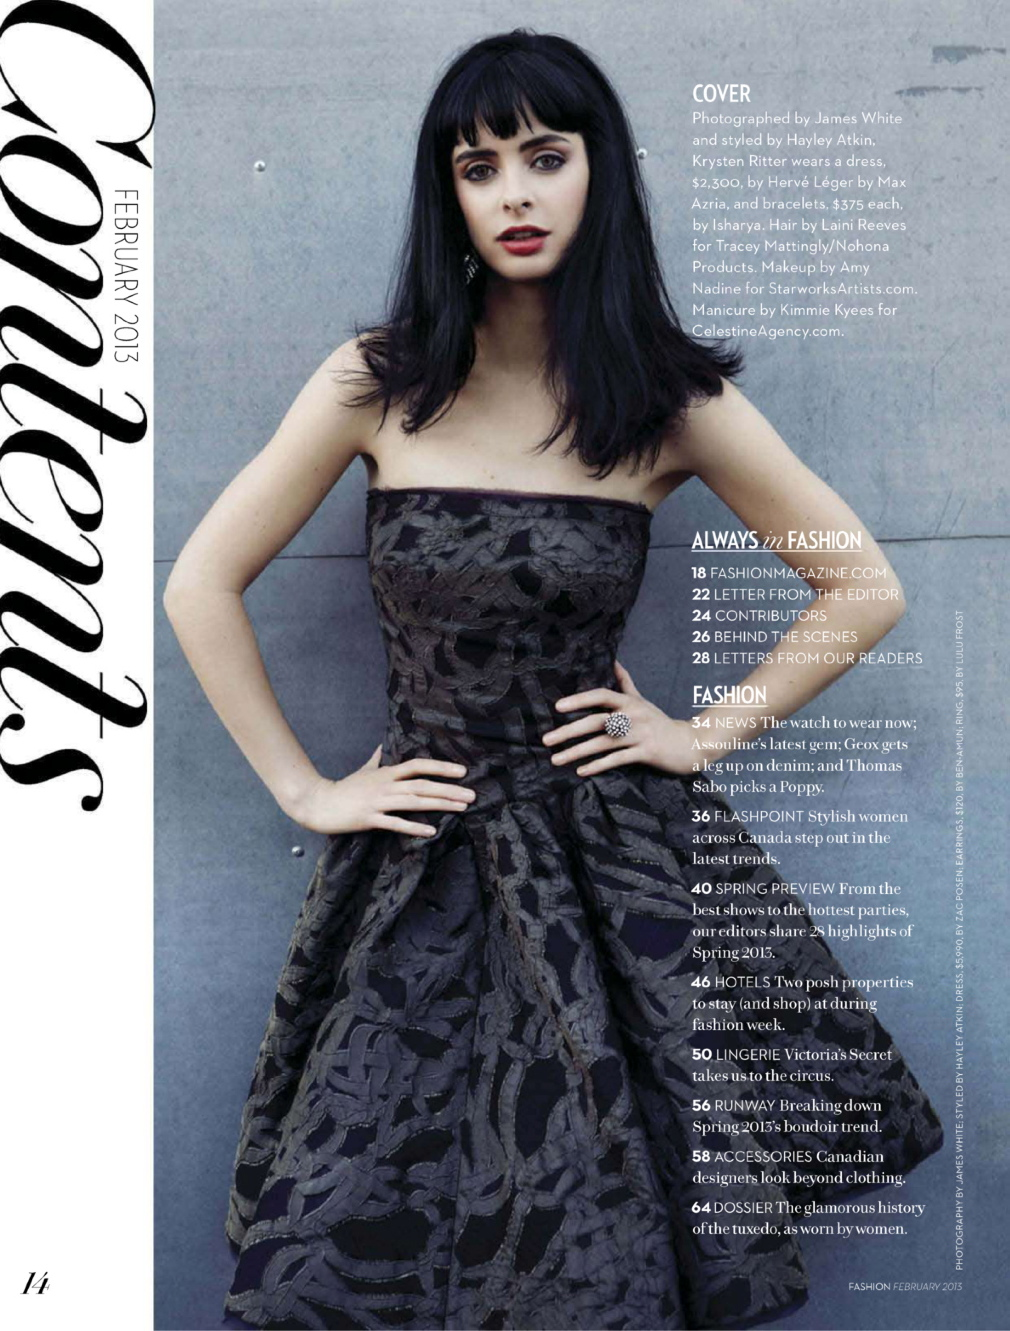 Gloss over This: Krysten Ritter in Fashion